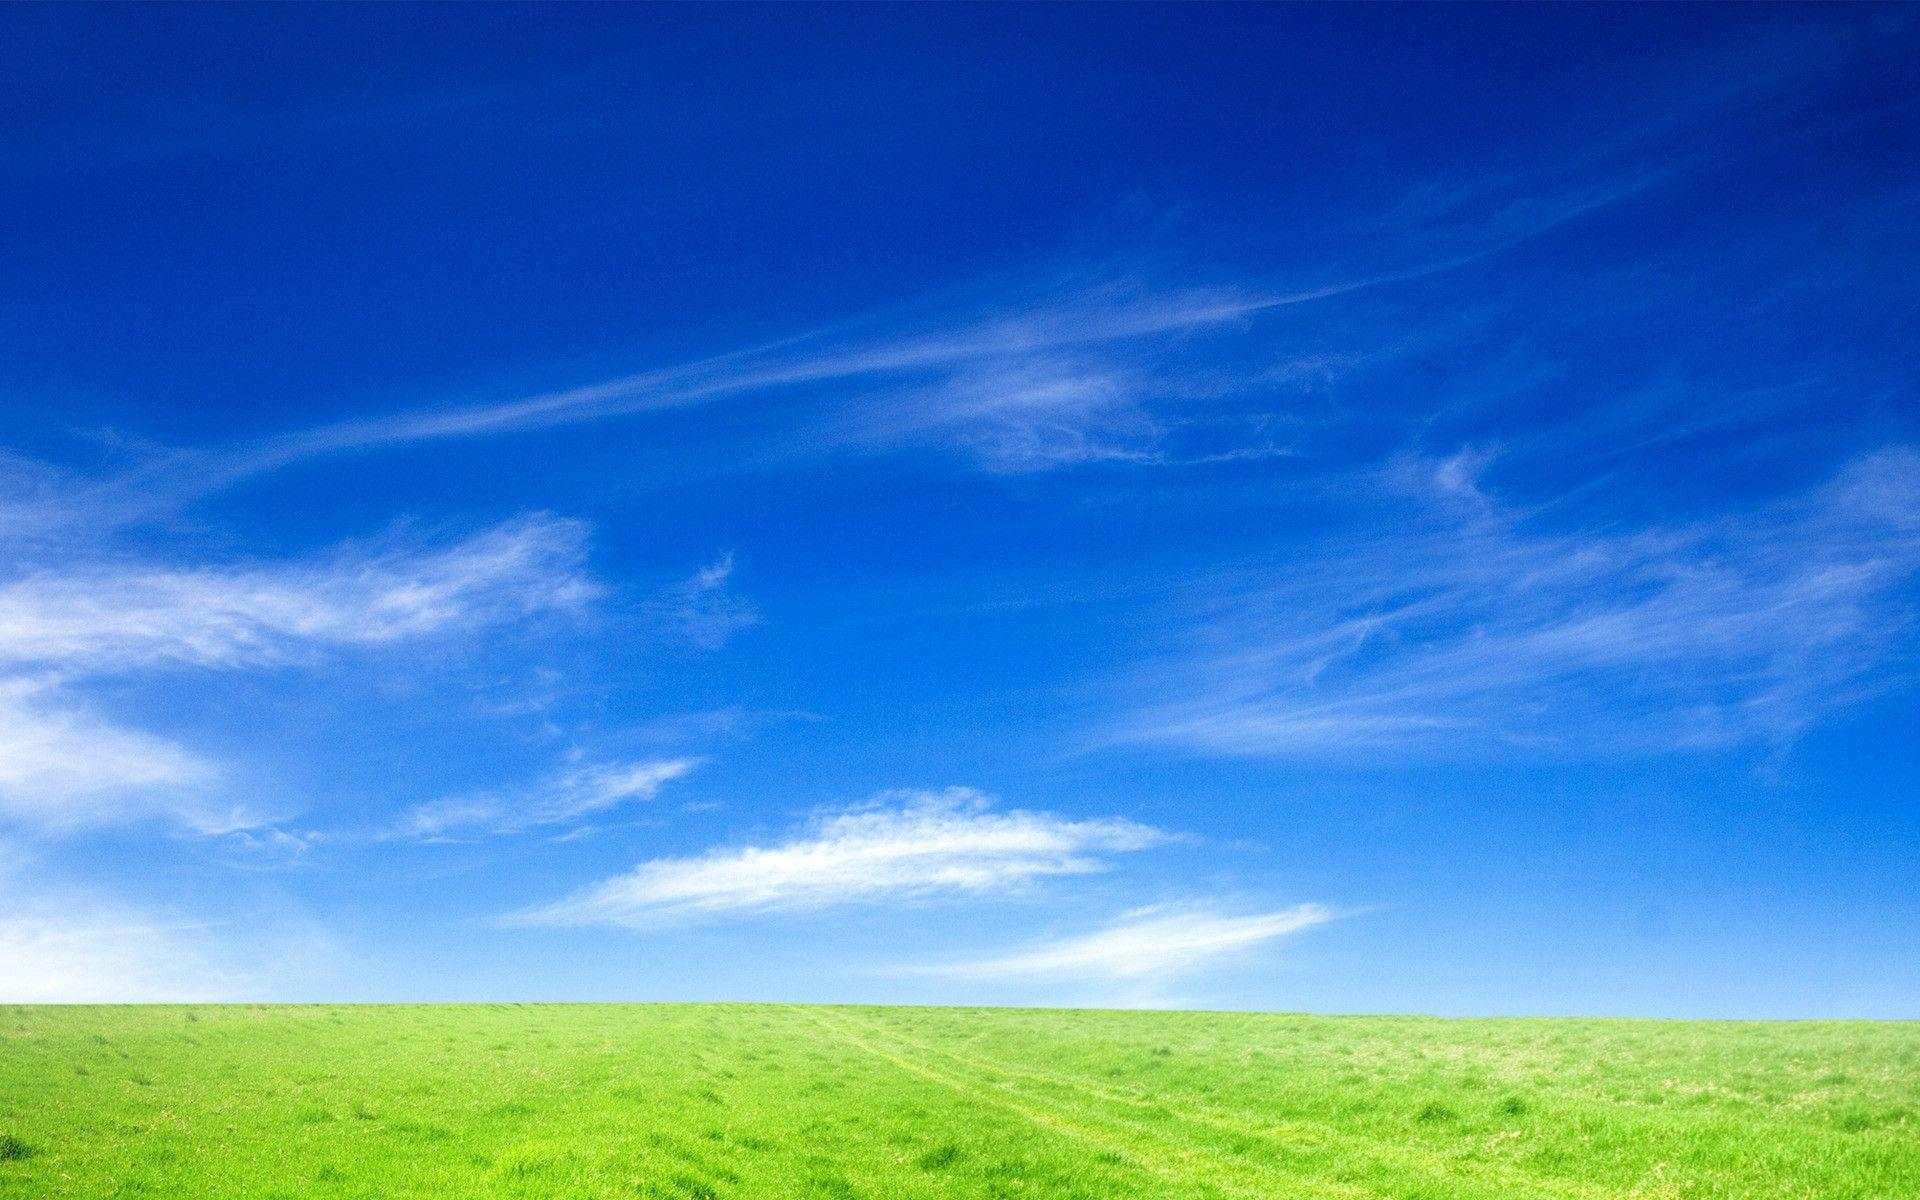 Blue Sky Background Powerpoint Backgrounds For Free Powerpoint Templates